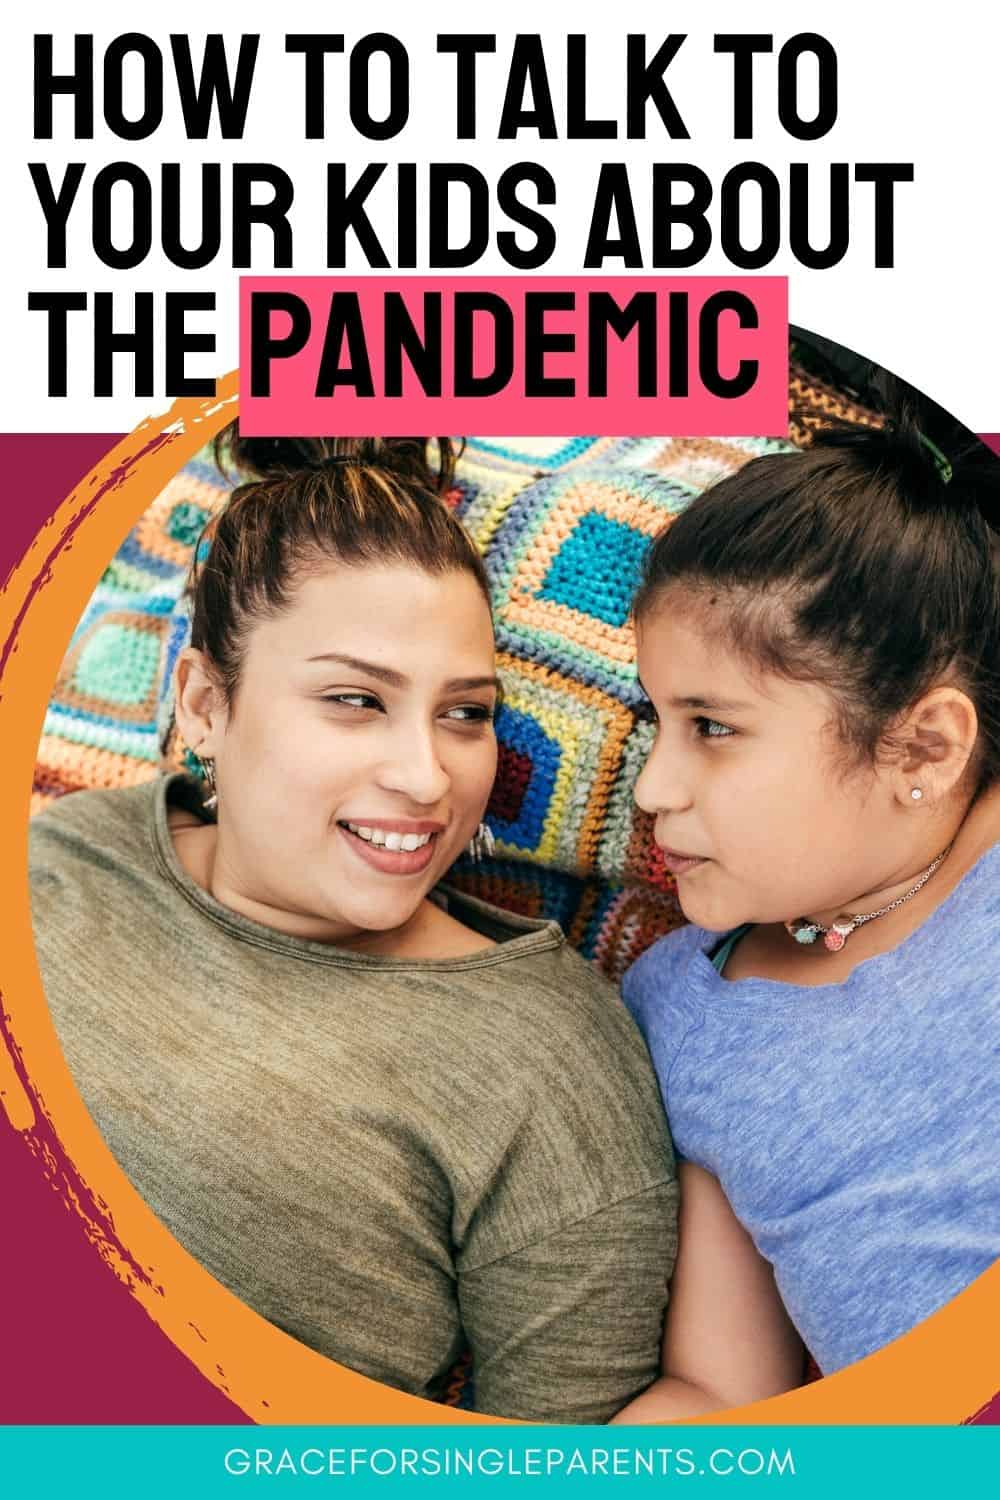 How to Talk to Your Kids About the Pandemic